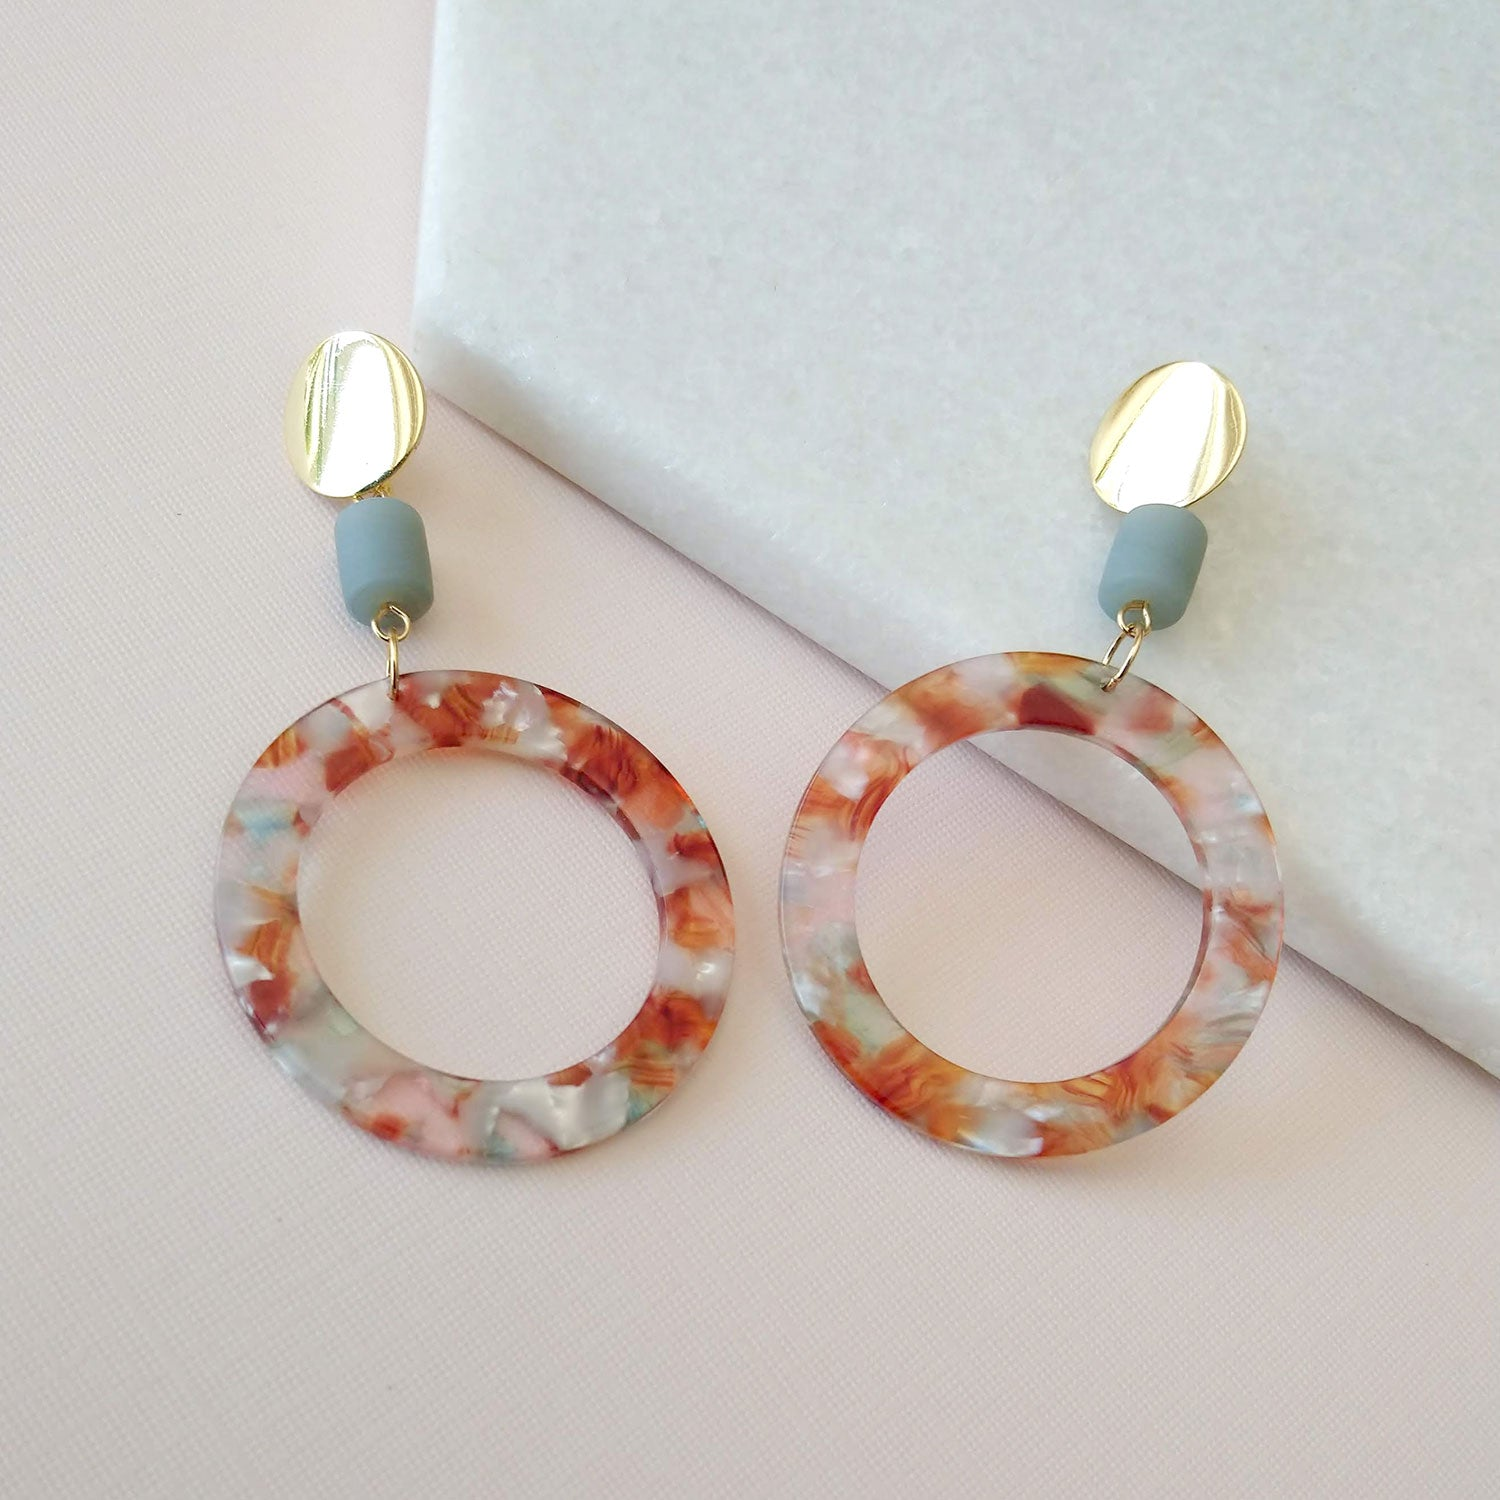 tortoiseshell earrings hoops